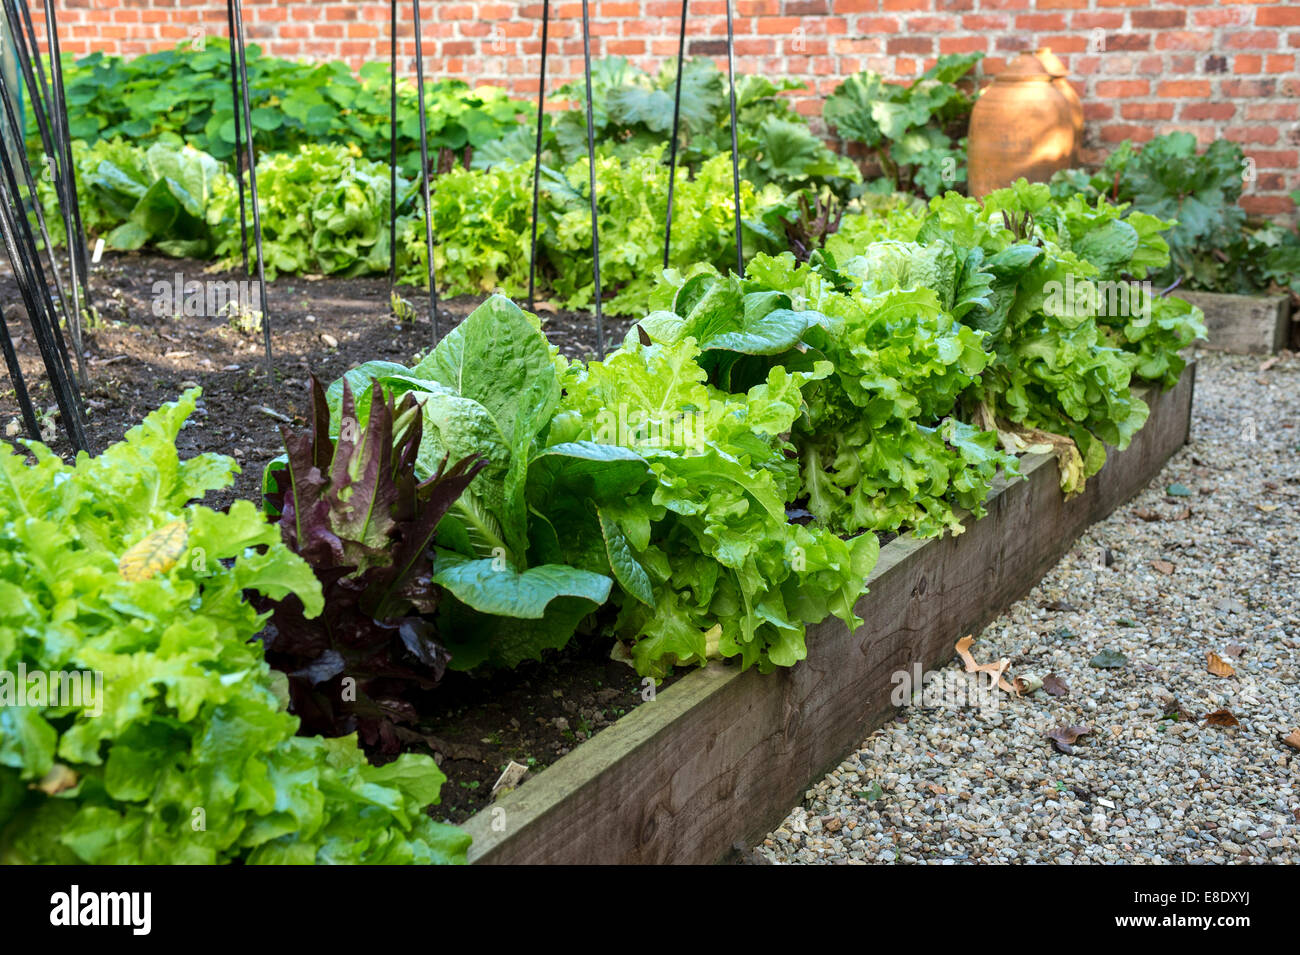 The kitchen garden at the rear of the 18th century Georgian Deanery, Oakfield Demesne, Raphoe, County Donegal, Ireland, - Stock Image